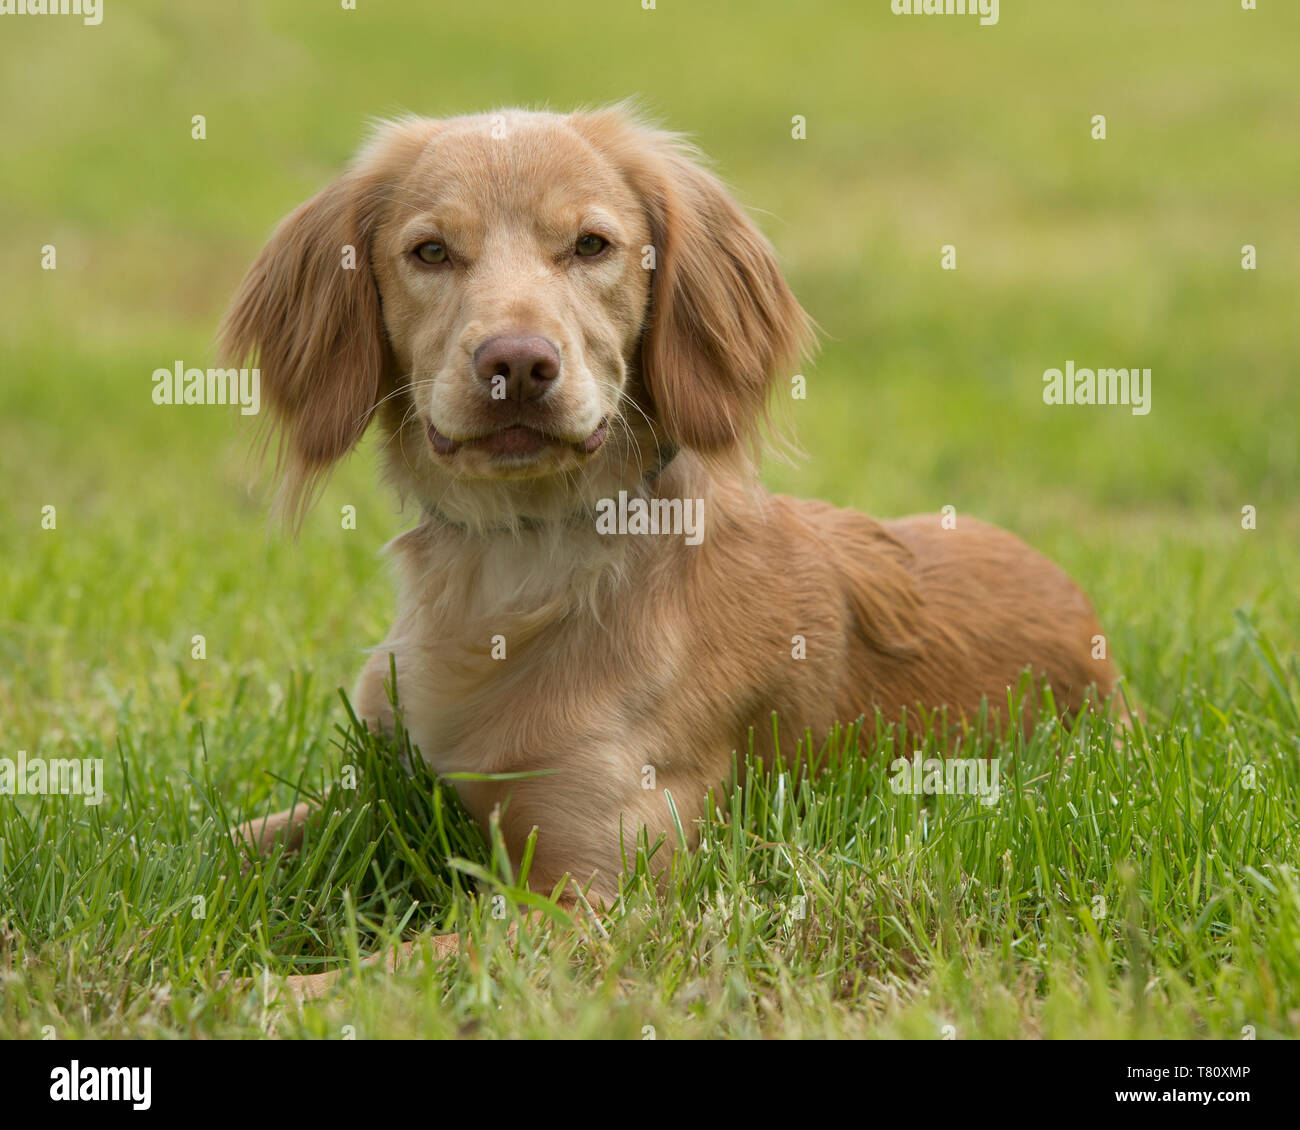 golden working cocker spaniel dog - Stock Image